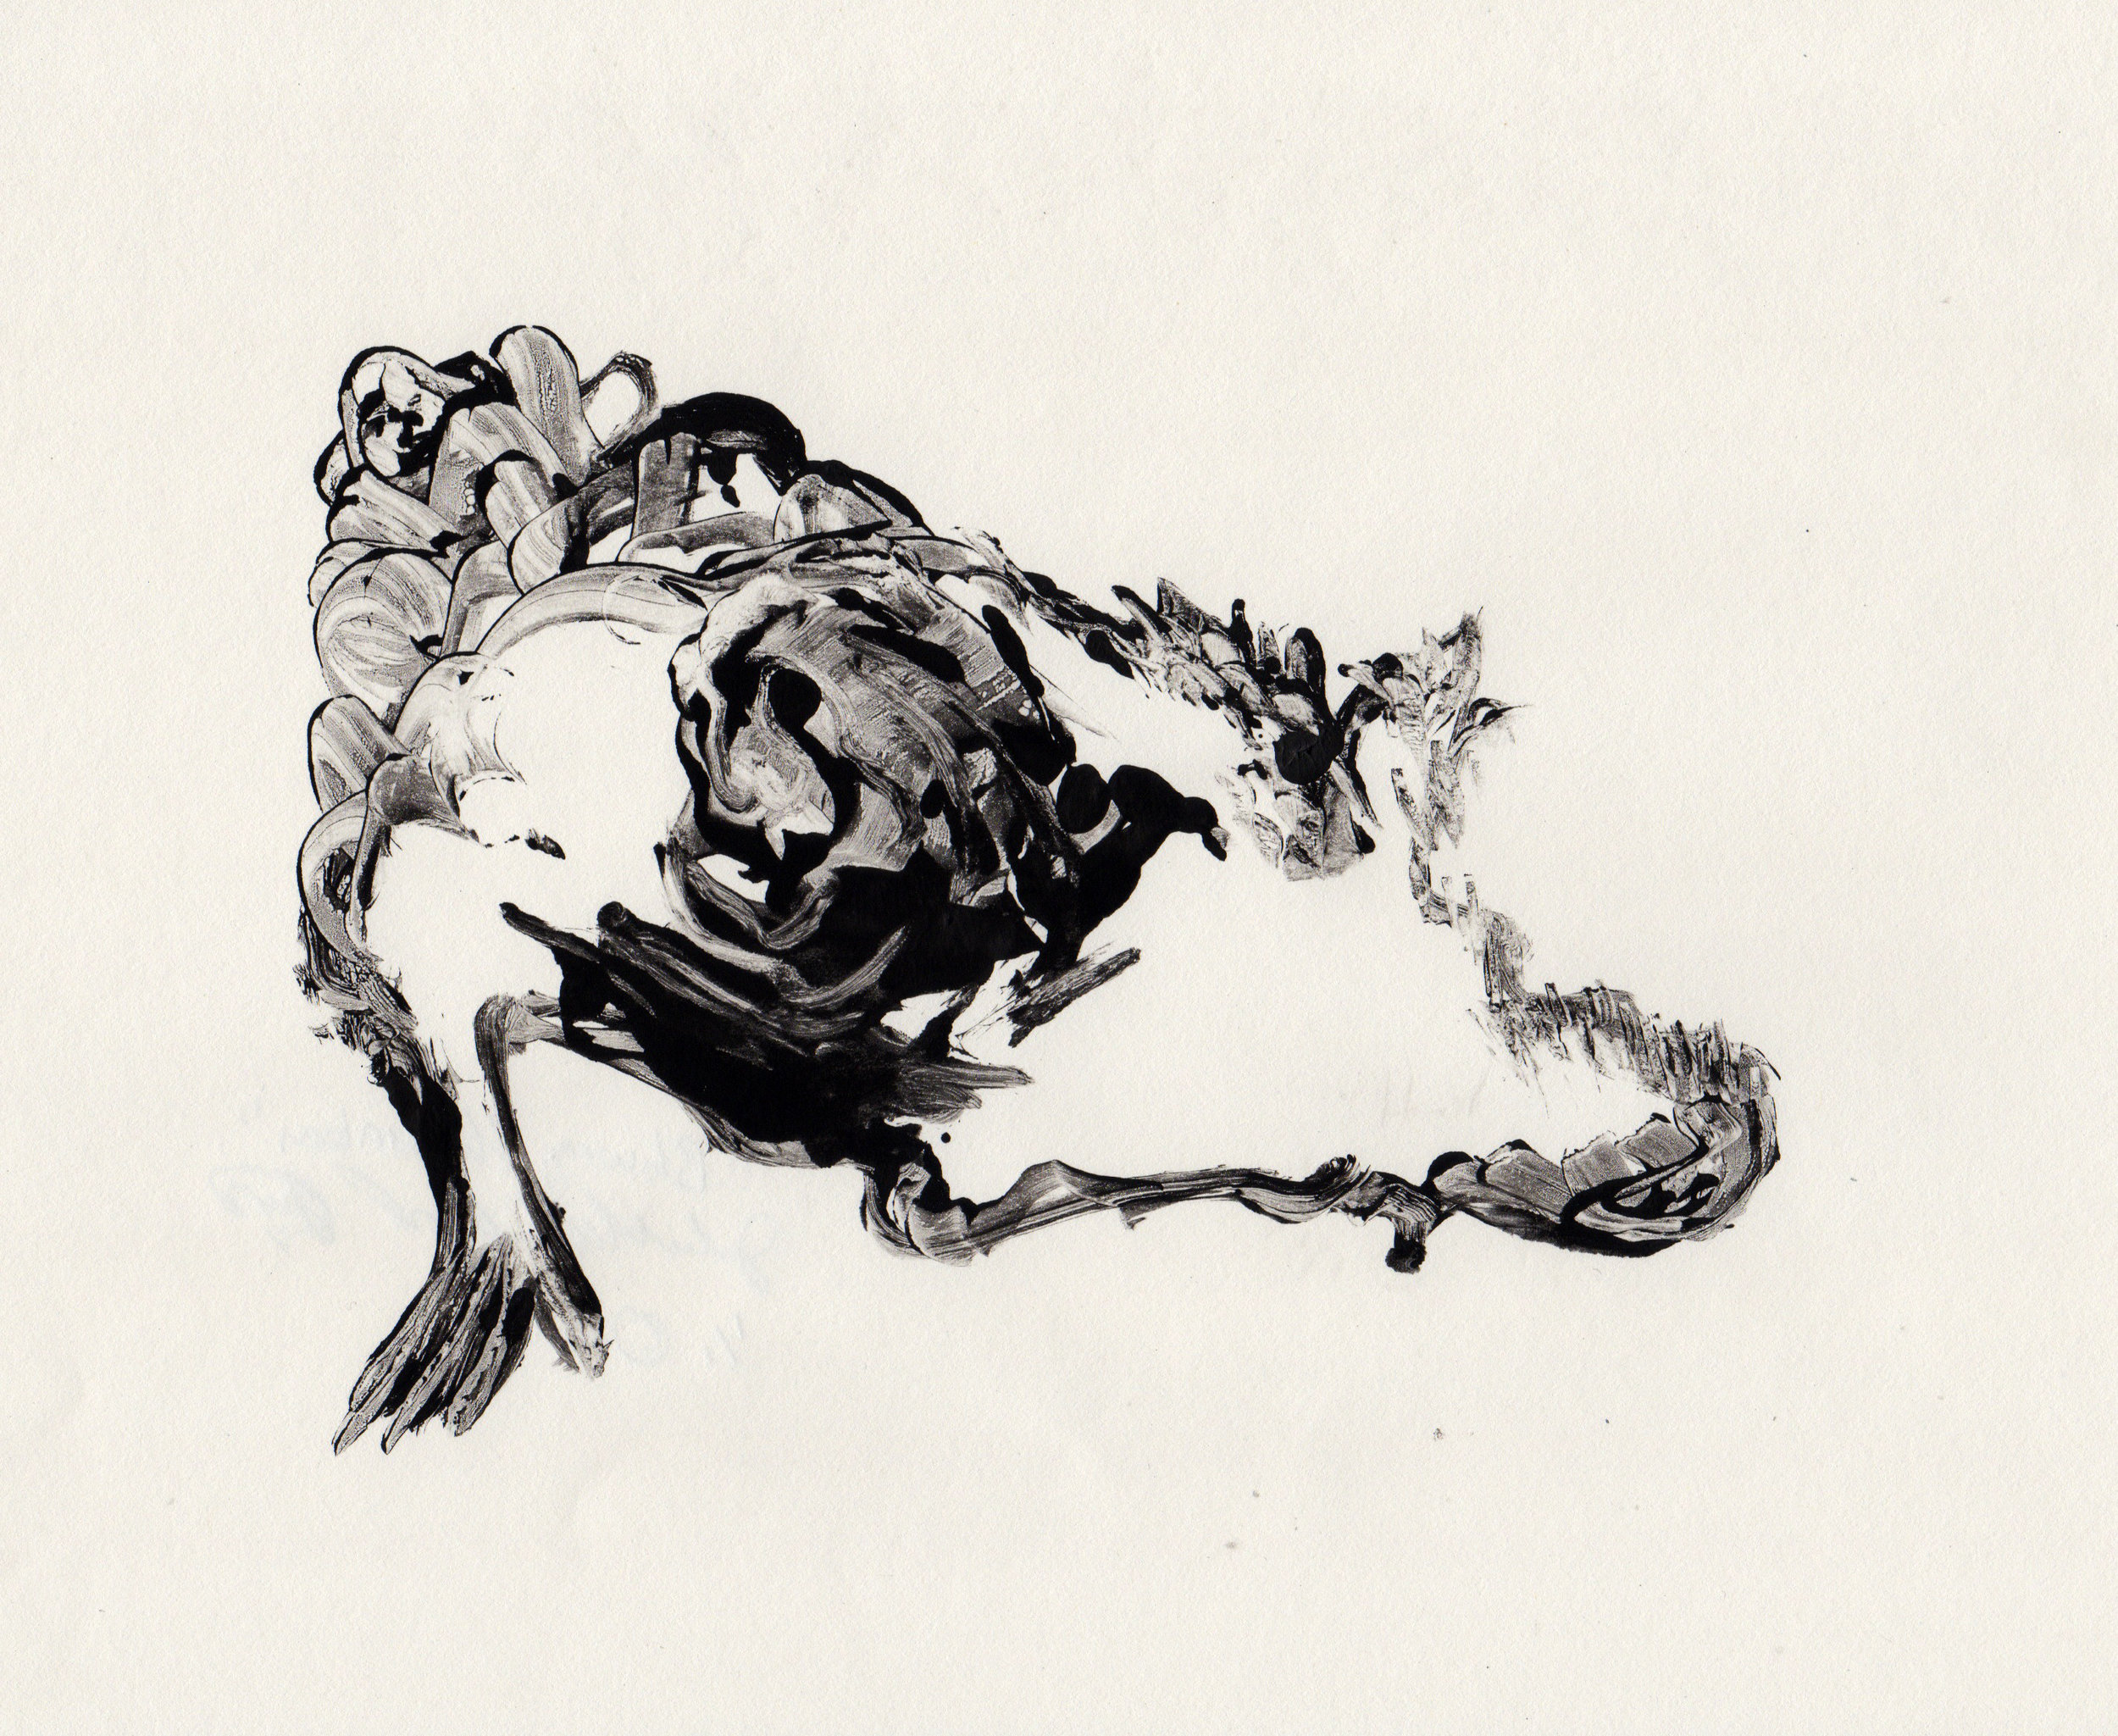 Blowing The Embers, 2014, gelatin monotype, 10x9 inches